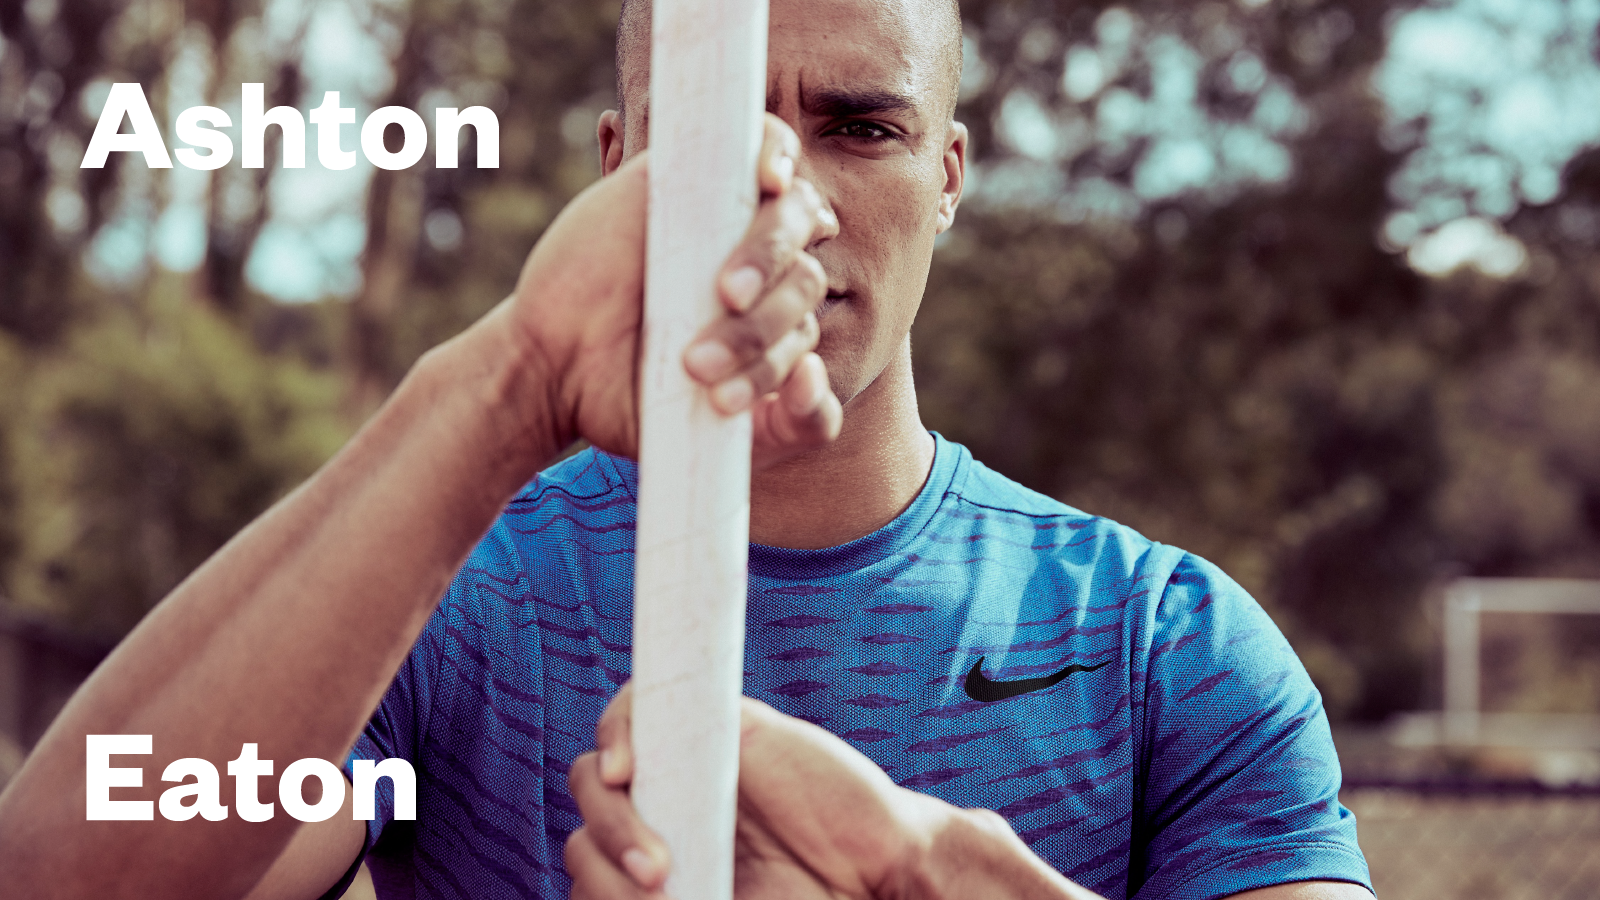 Ashton eaton teaser 16 9 hd 1600